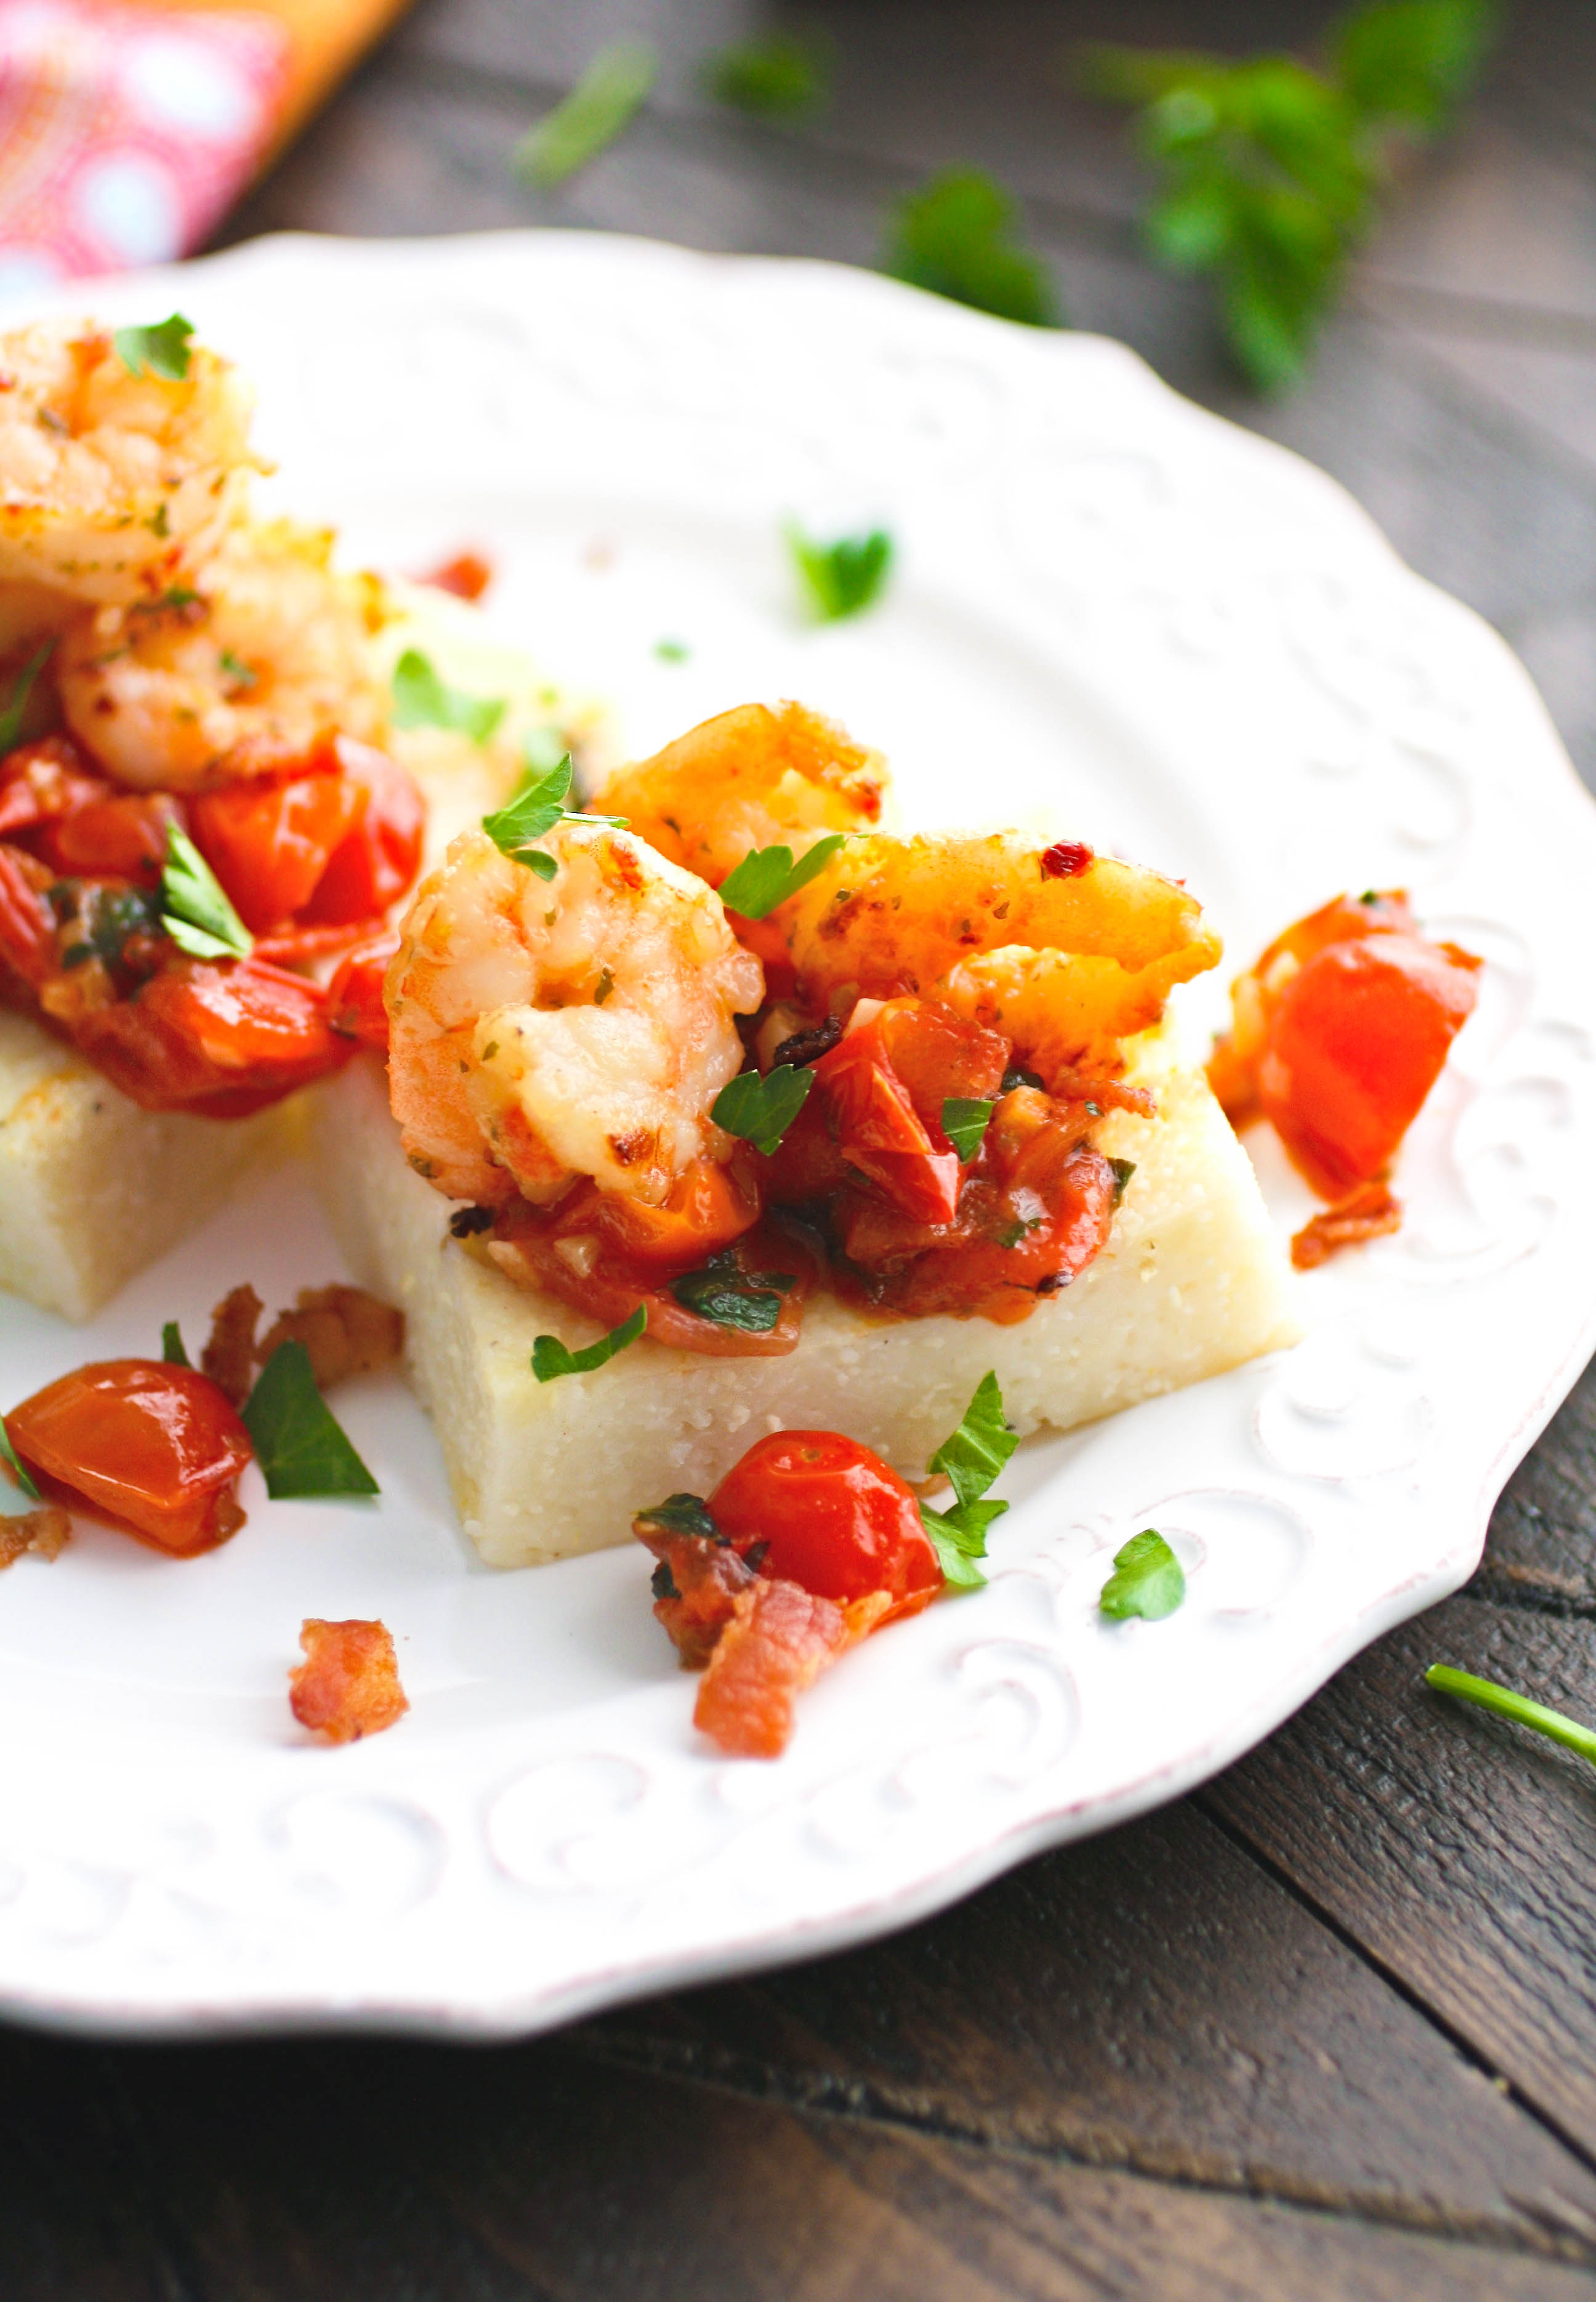 Enjoy a coastal favorite! These Individual Cheesy Shrimp & Grits are so tasty for a special meal!